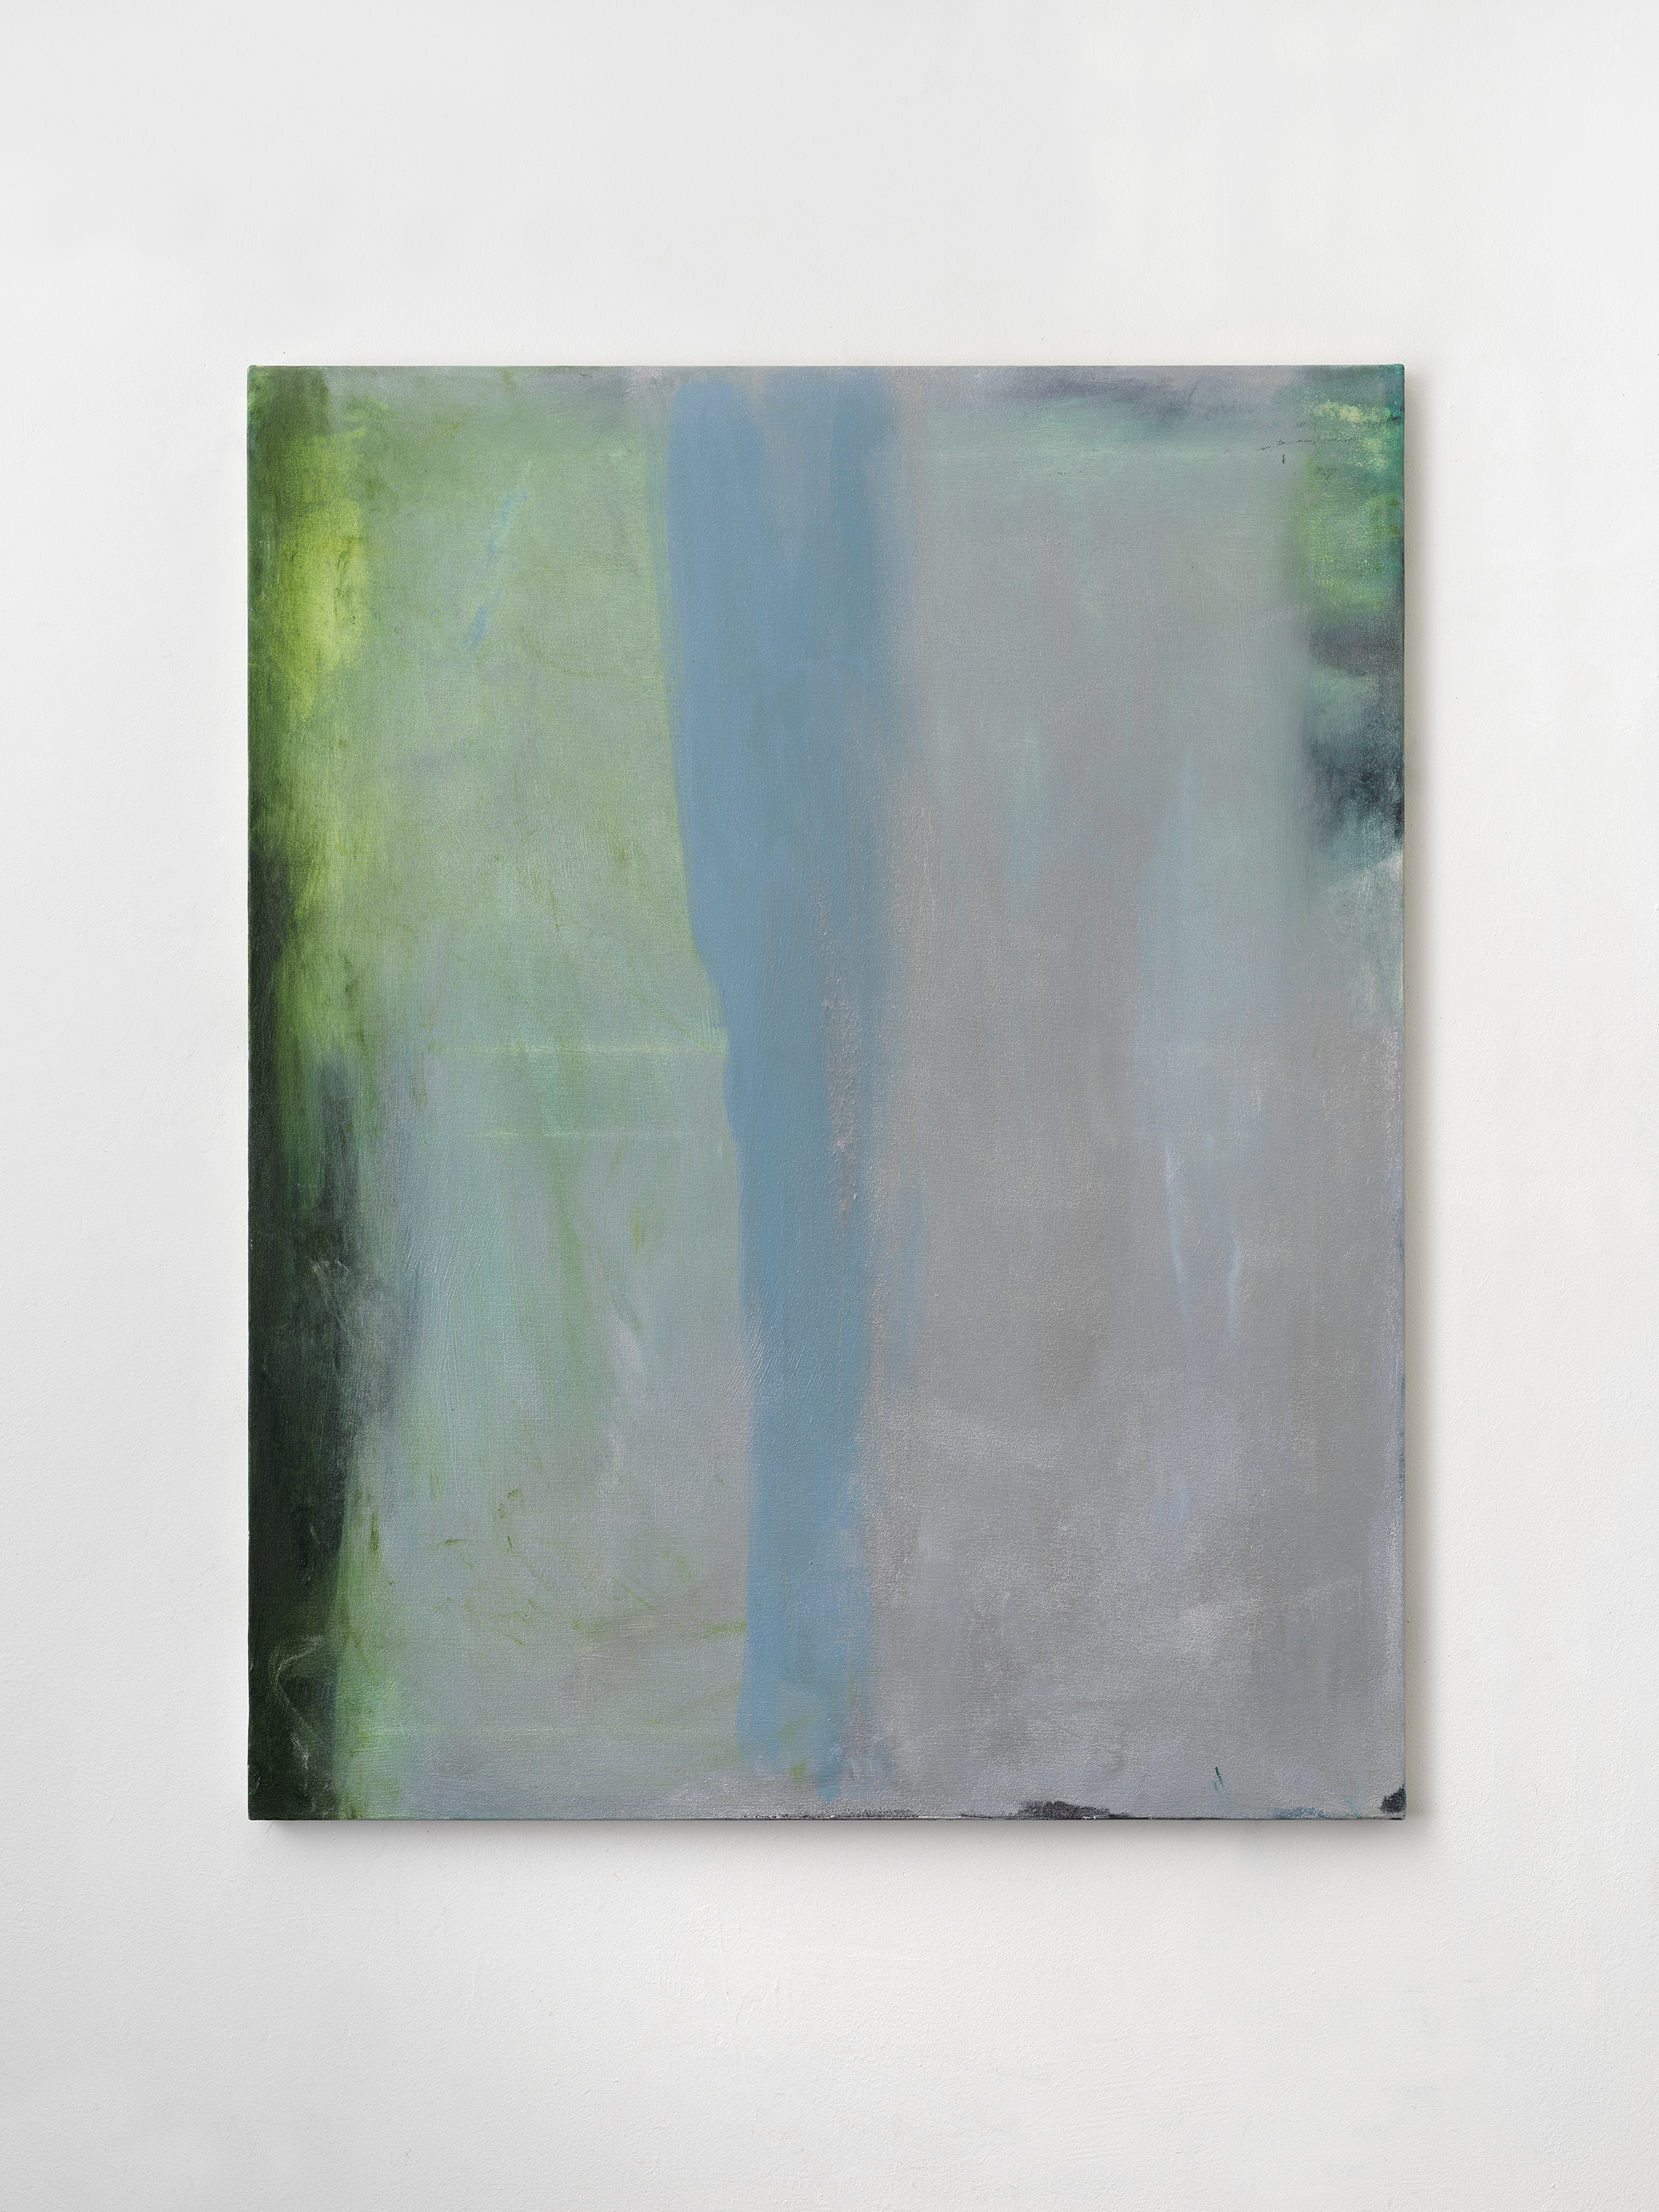 Untitled silver Painting # 4